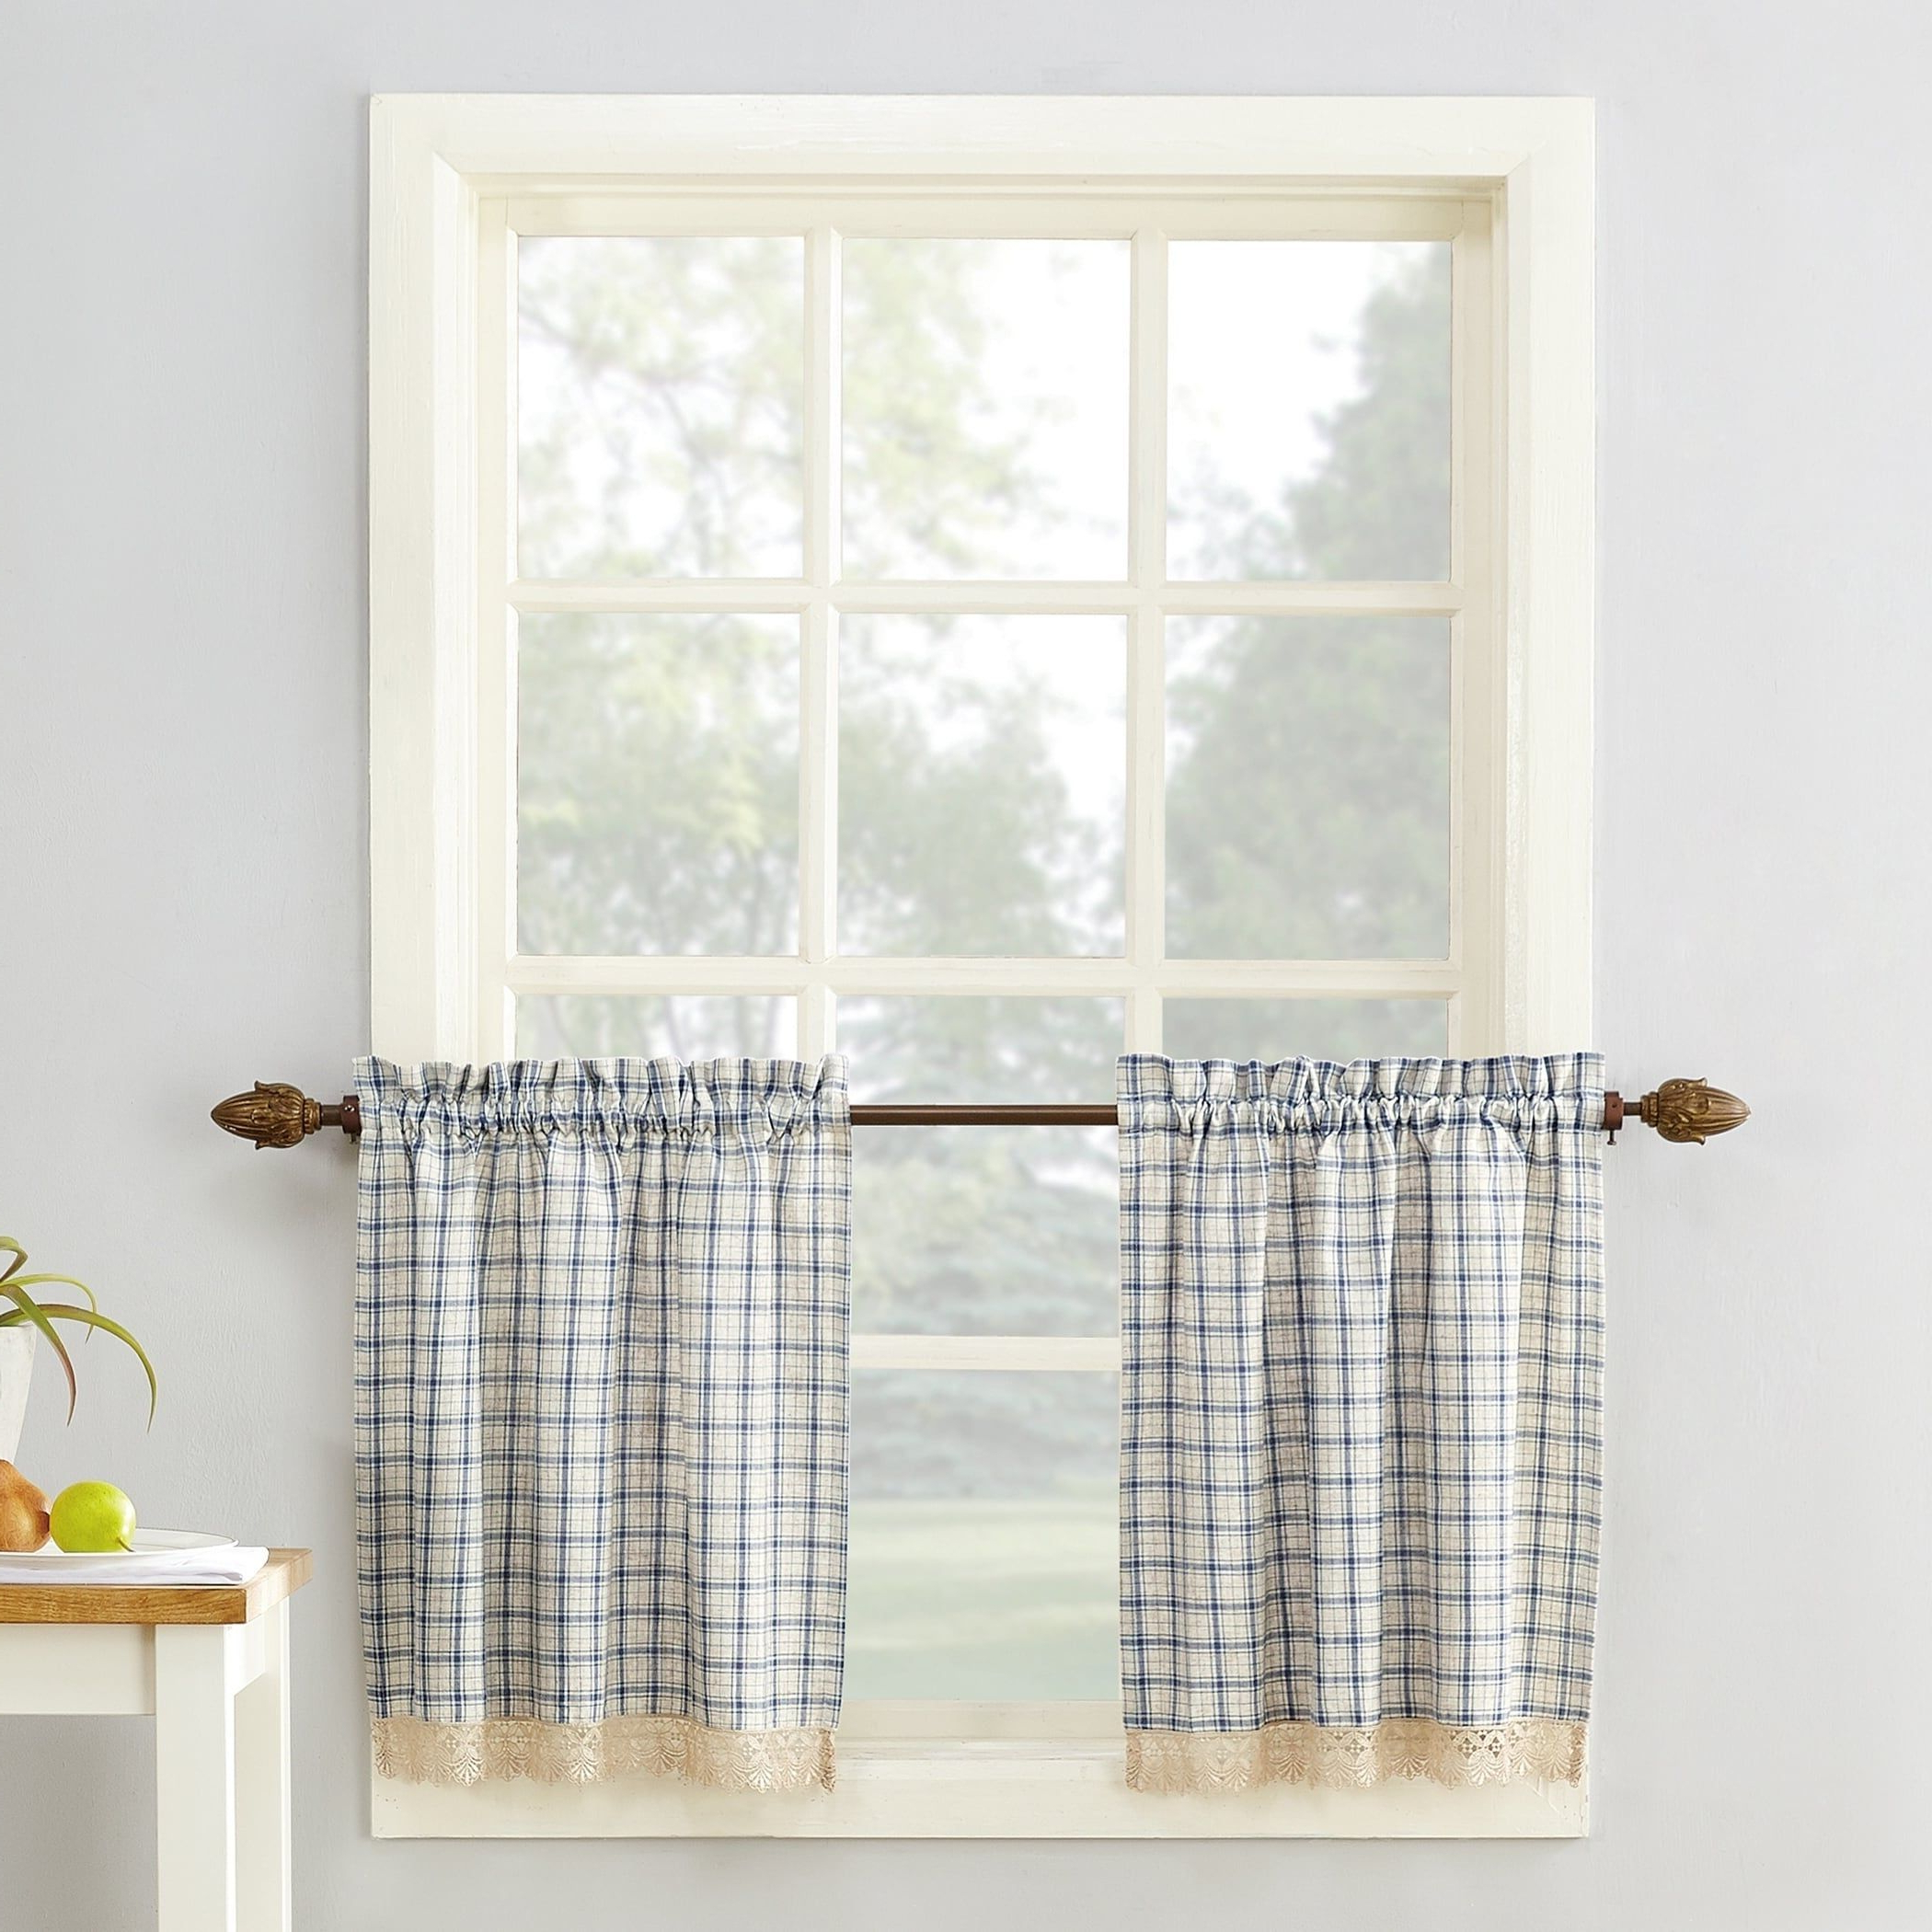 Drop In Popular Twill 3 Piece Kitchen Curtain Tier Sets (View 14 of 20)